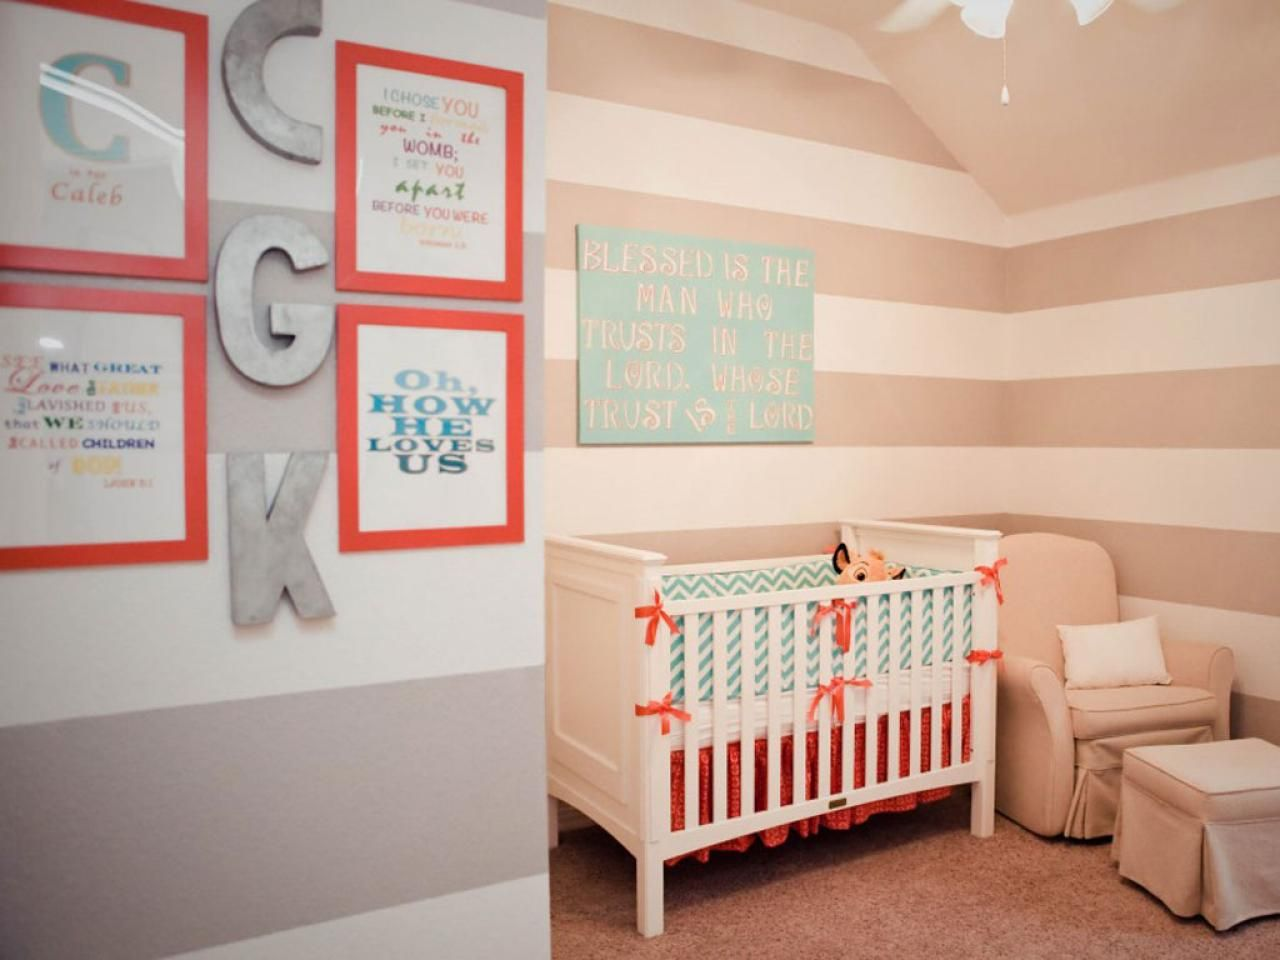 Bright Wall Art And Beige And White Striped Walls Bring A Soothing